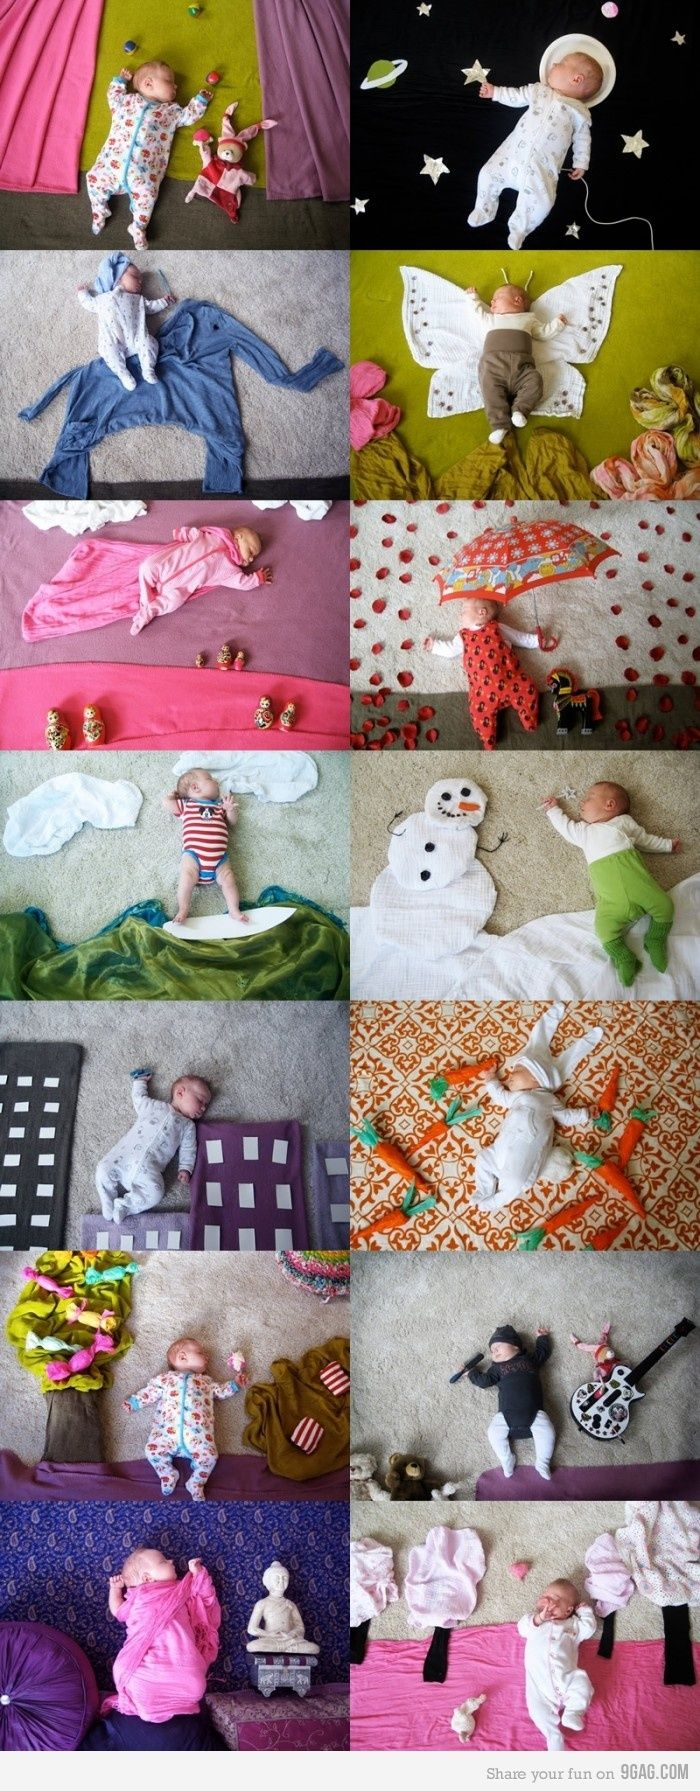 A great sleeping baby photo ideas. We like them all. Adorable. babyphoto